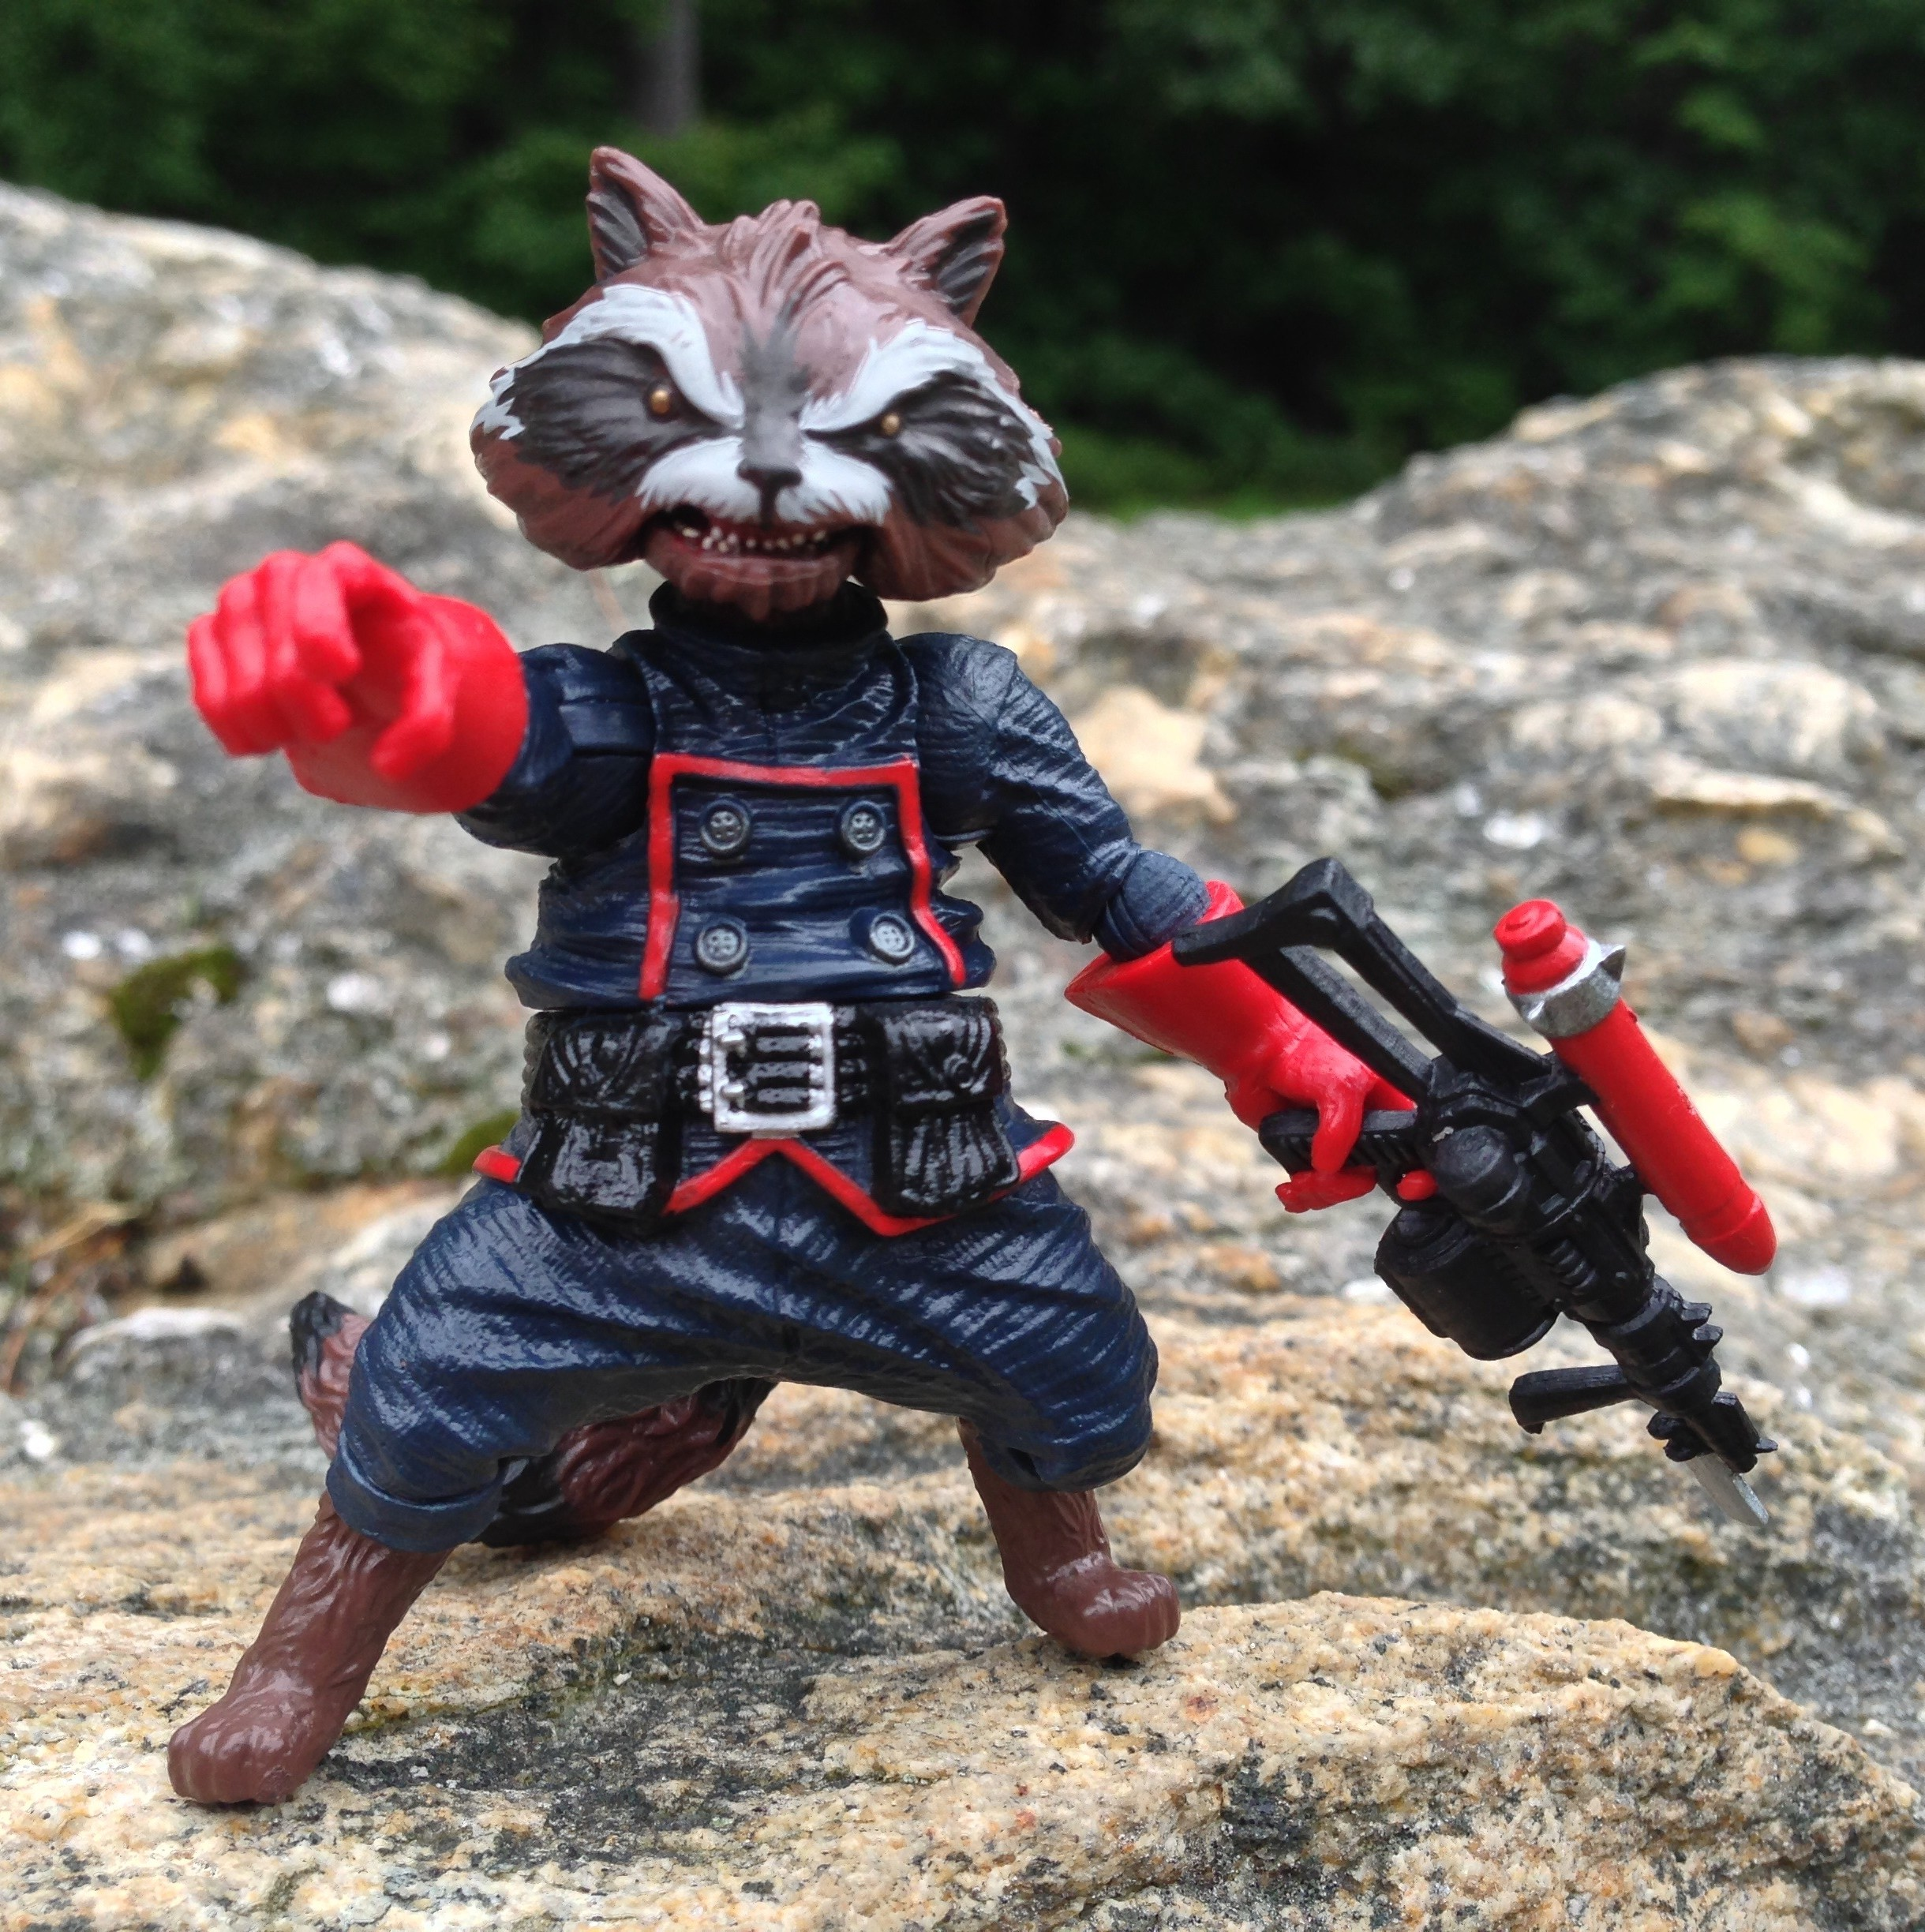 Marvel Legends Rocket Raccoon Build-A-Figure